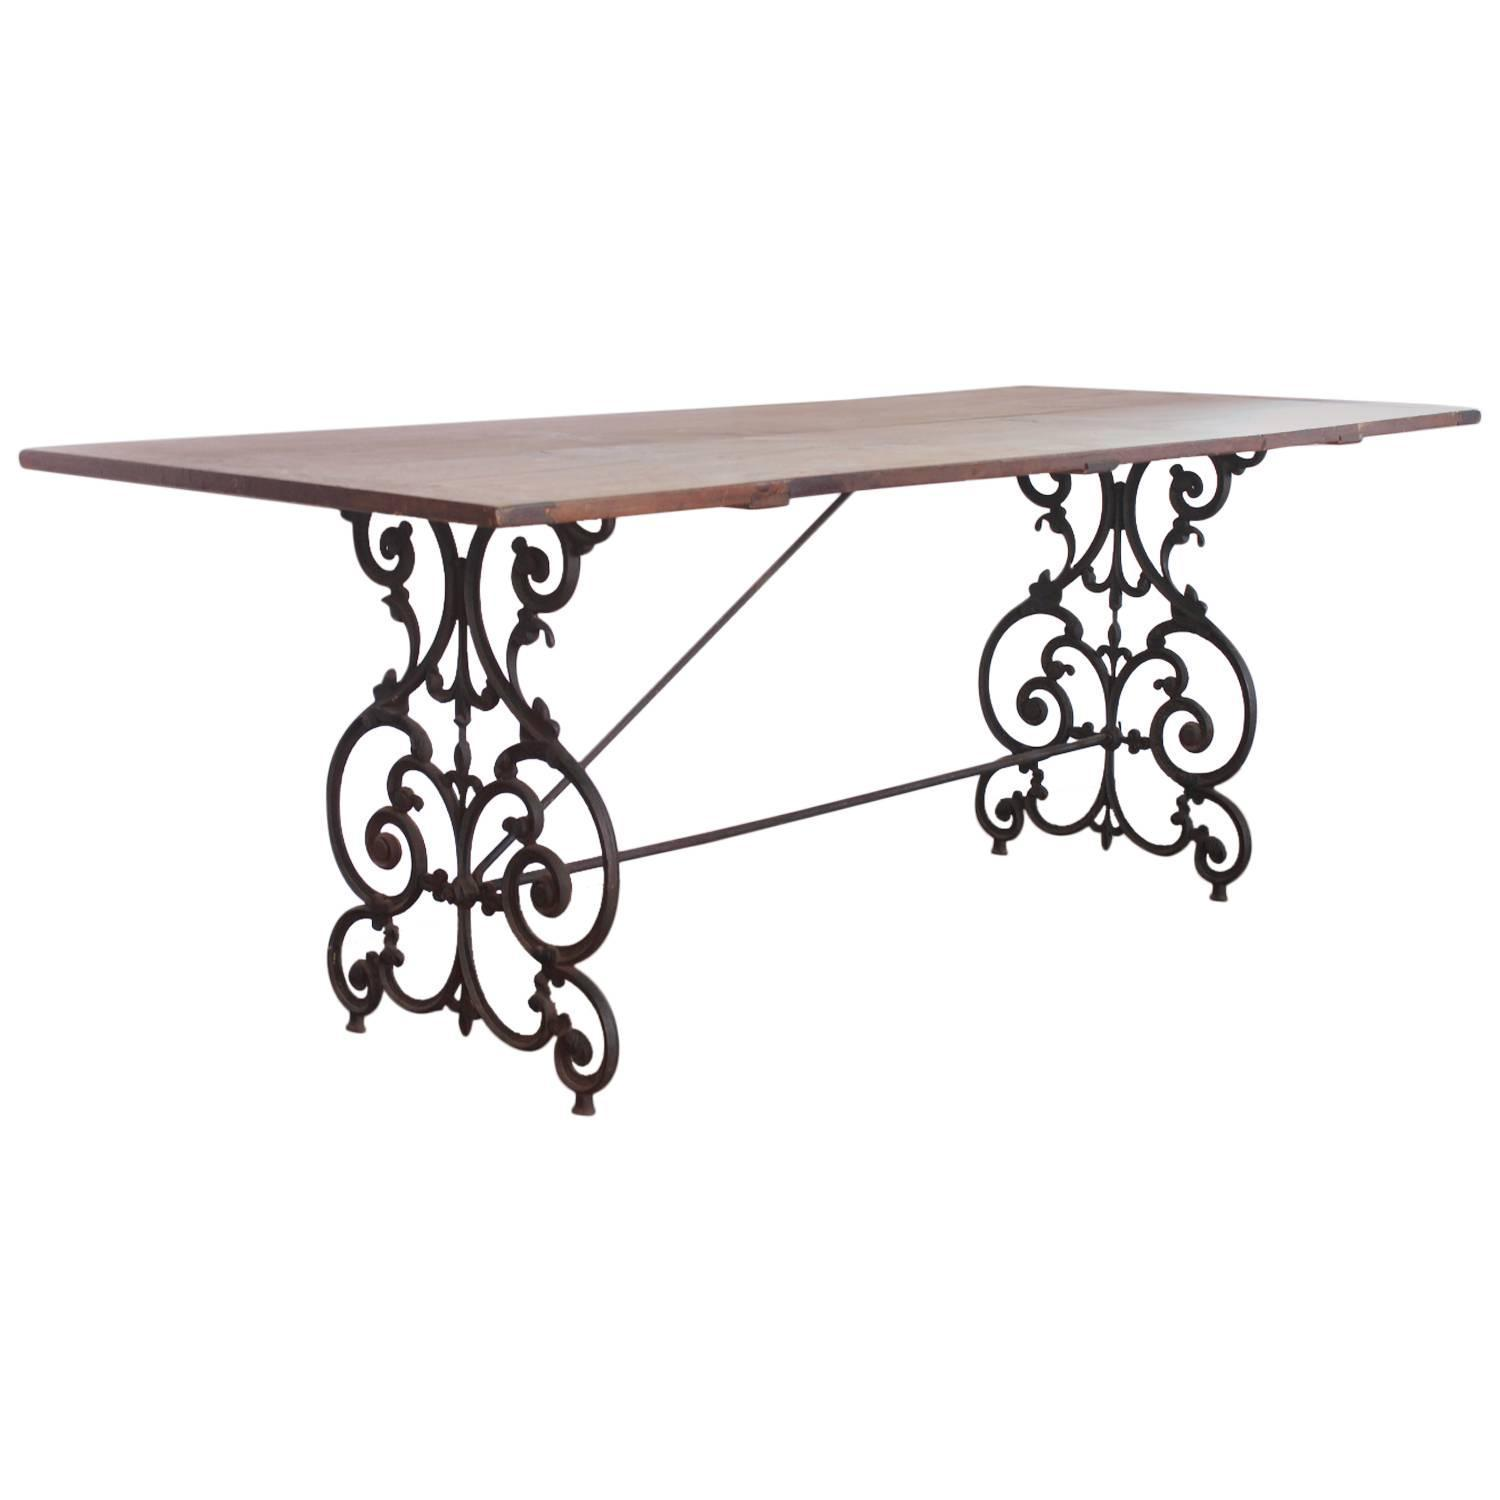 american wrought iron and wood base dining table circa 1900s at 1stdibs. Black Bedroom Furniture Sets. Home Design Ideas